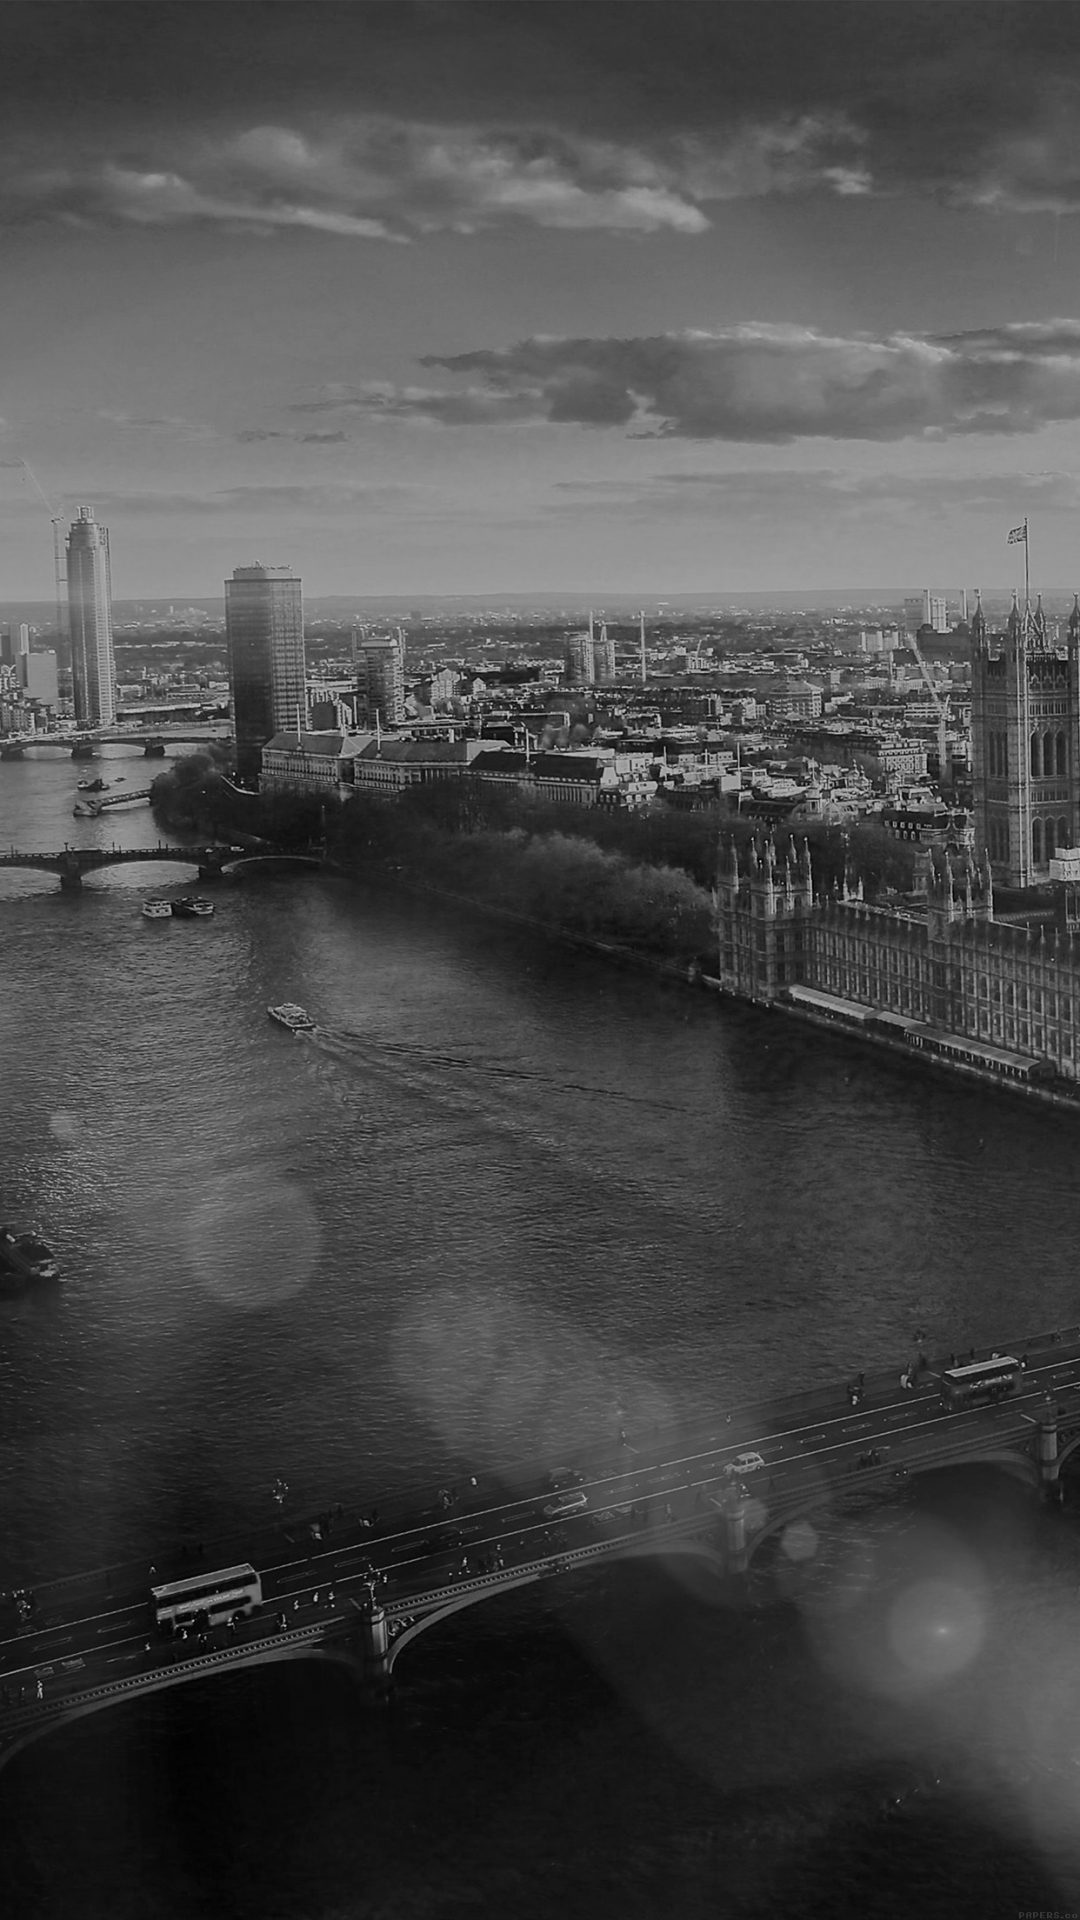 England London Dark Bw Skyview City Flare Big Ben Nature